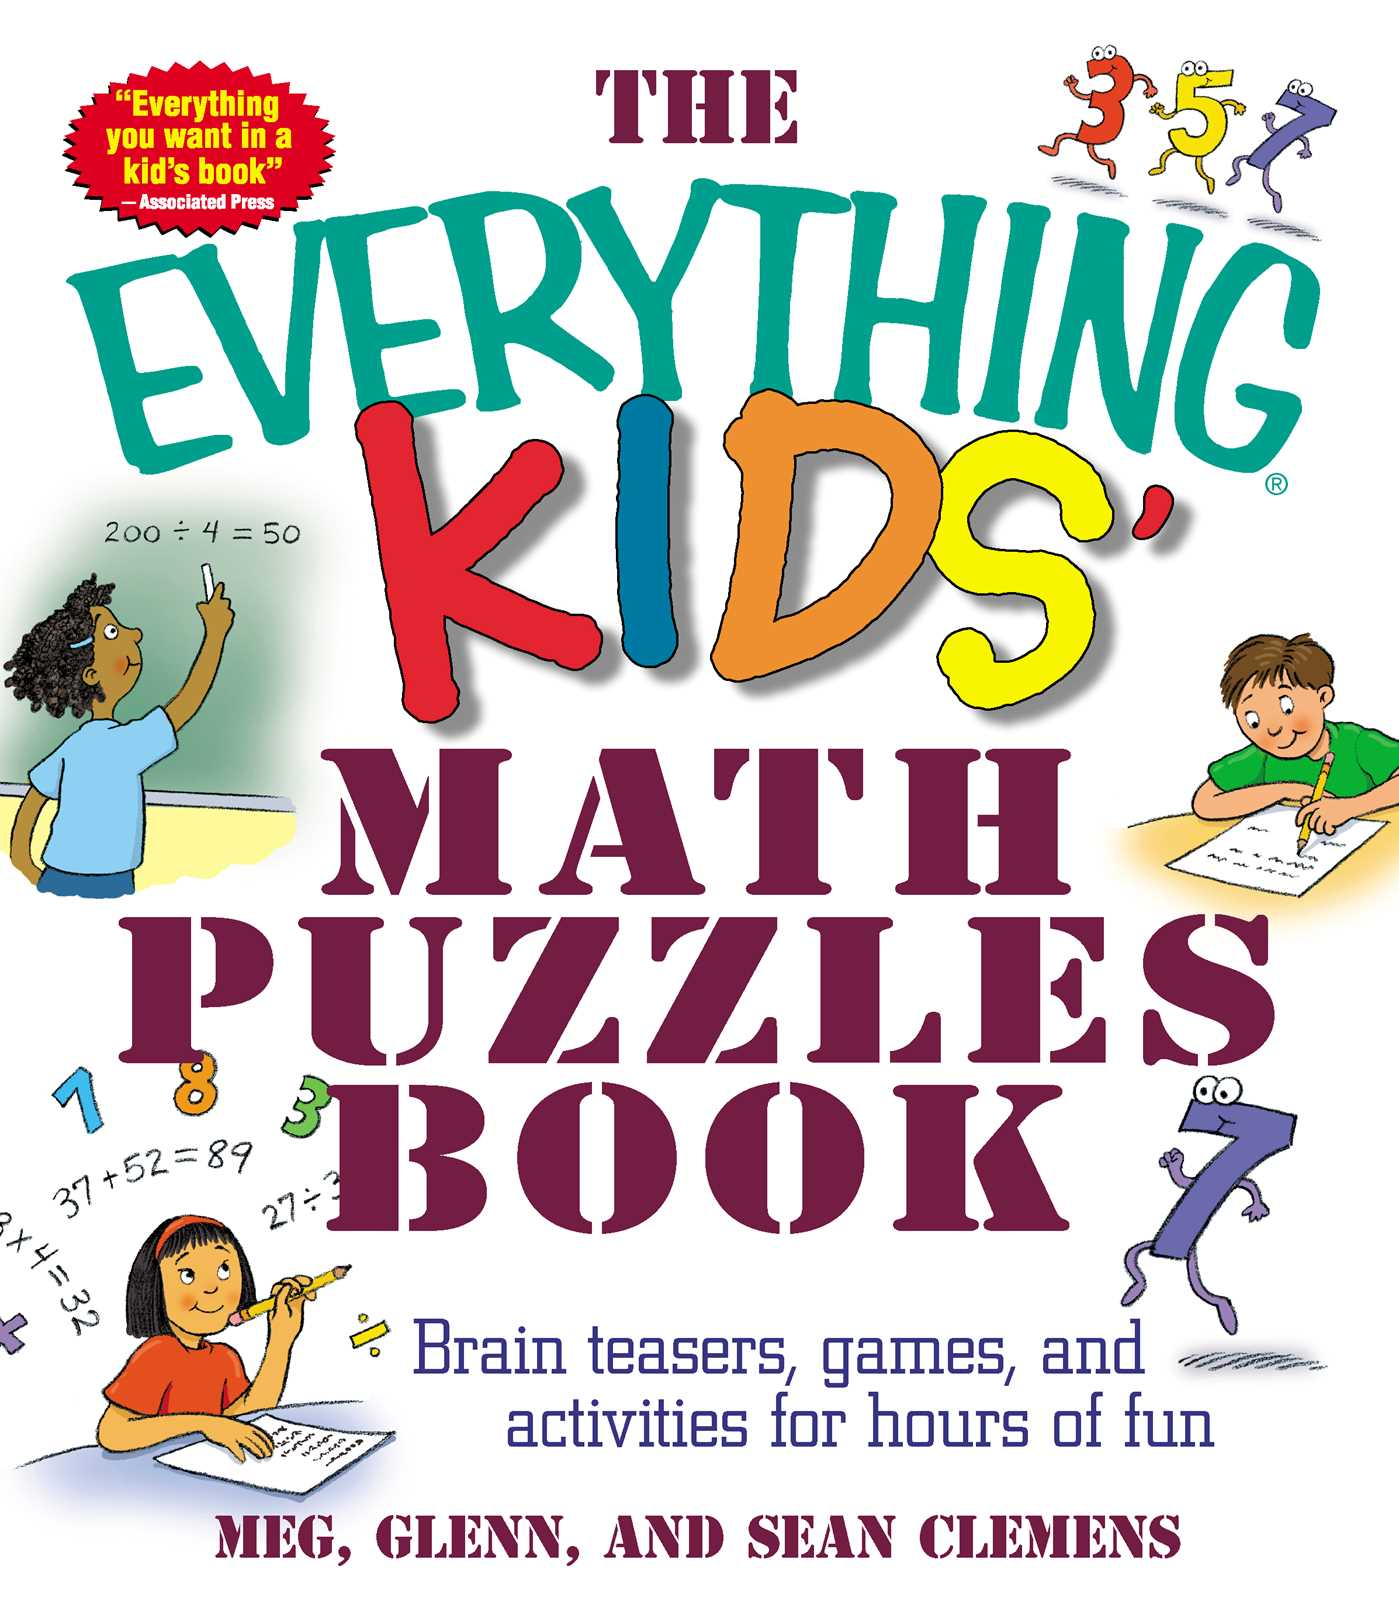 Book Cover Image Jpg The Everything Kids Math Puzzles